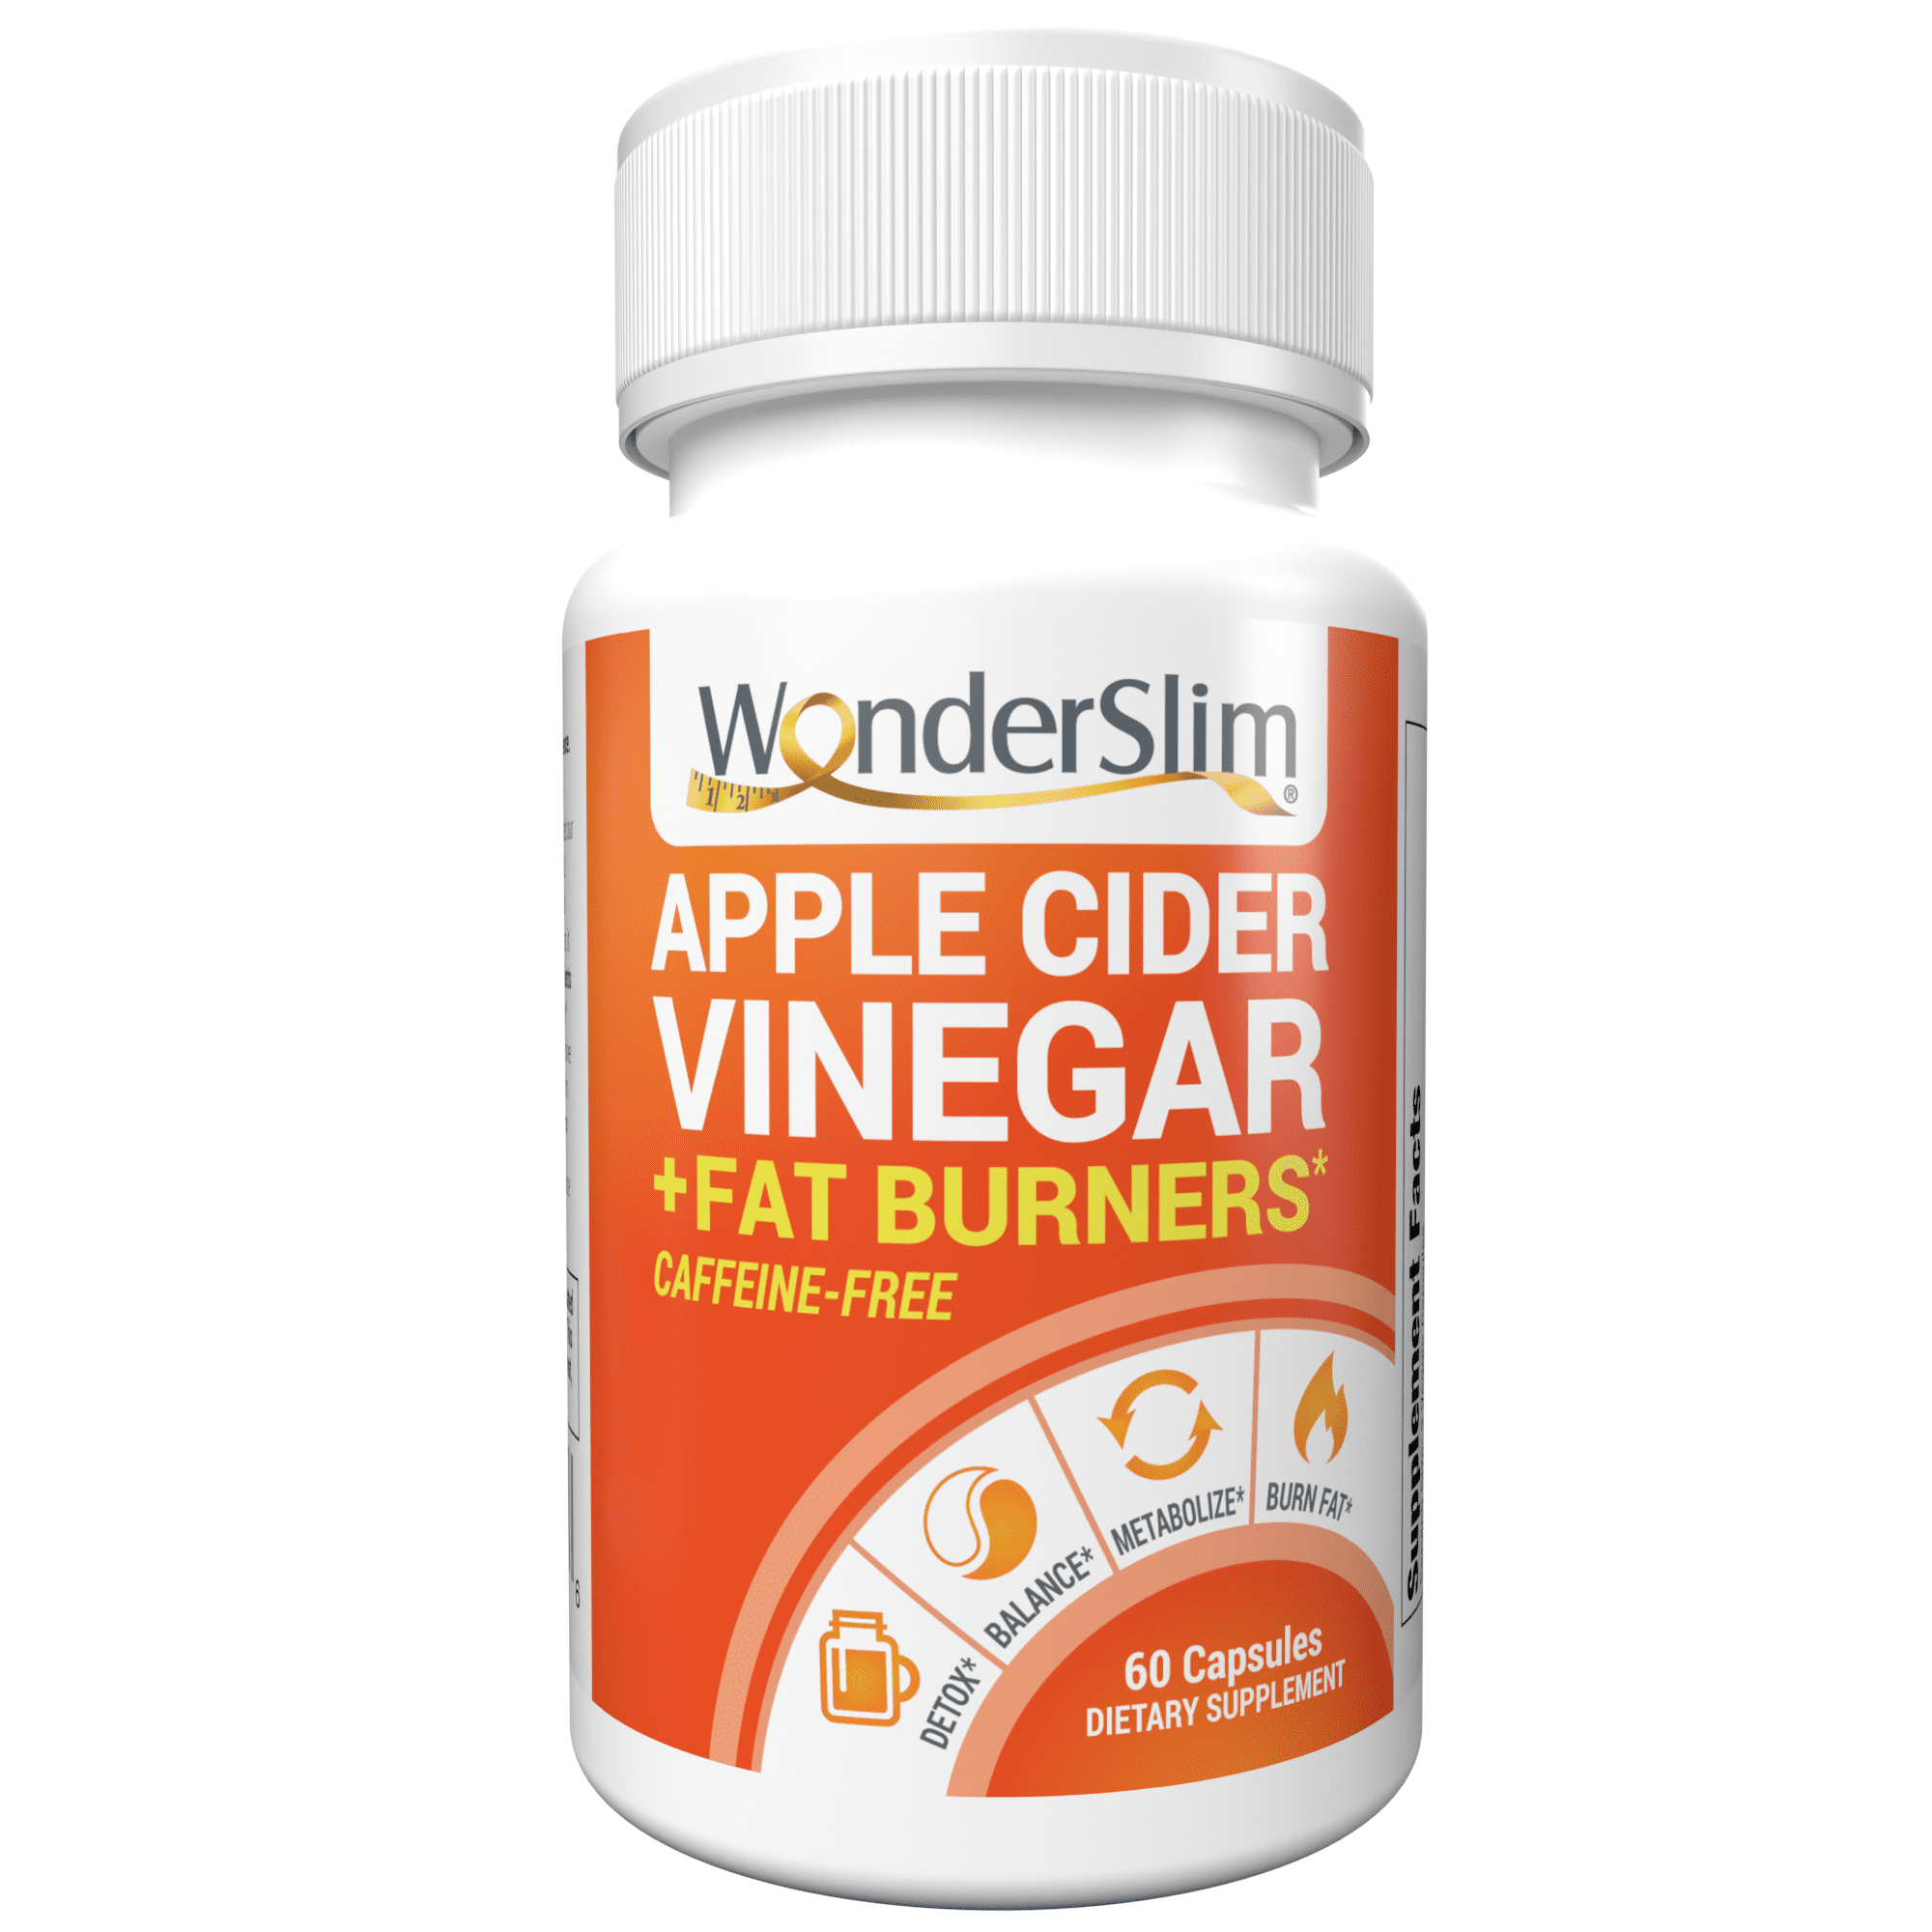 WonderSlim Apple Cider Vinegar Capsules + Fat Burner ...